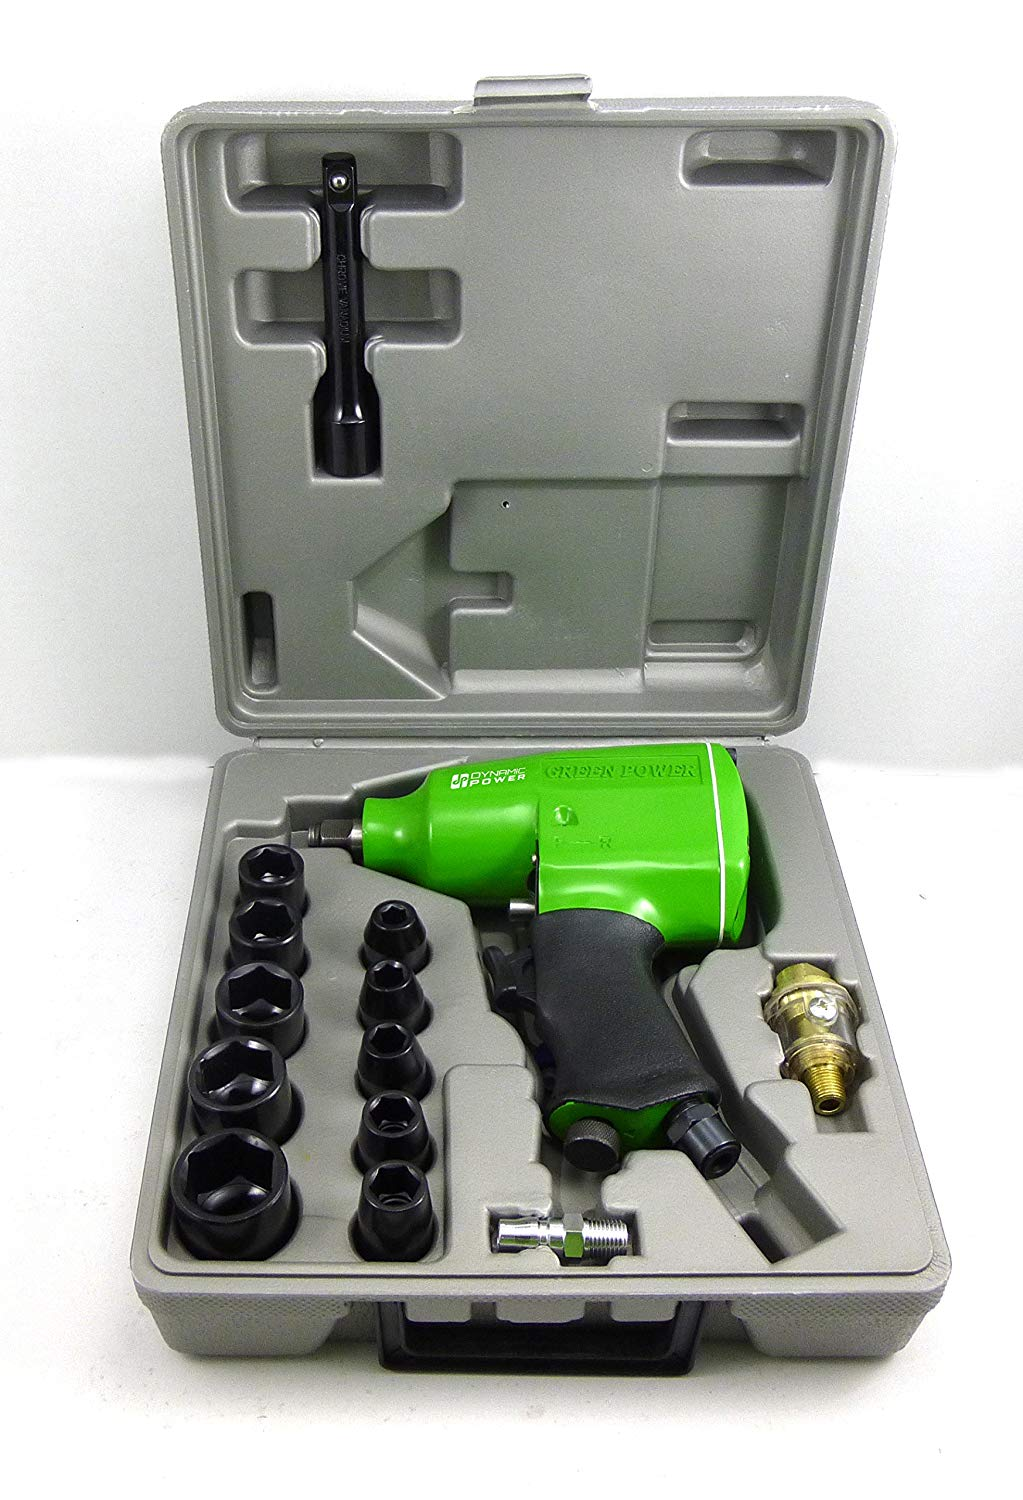 Dynamic 1 2 Air Impact Wrench Kit 4 Position Settings